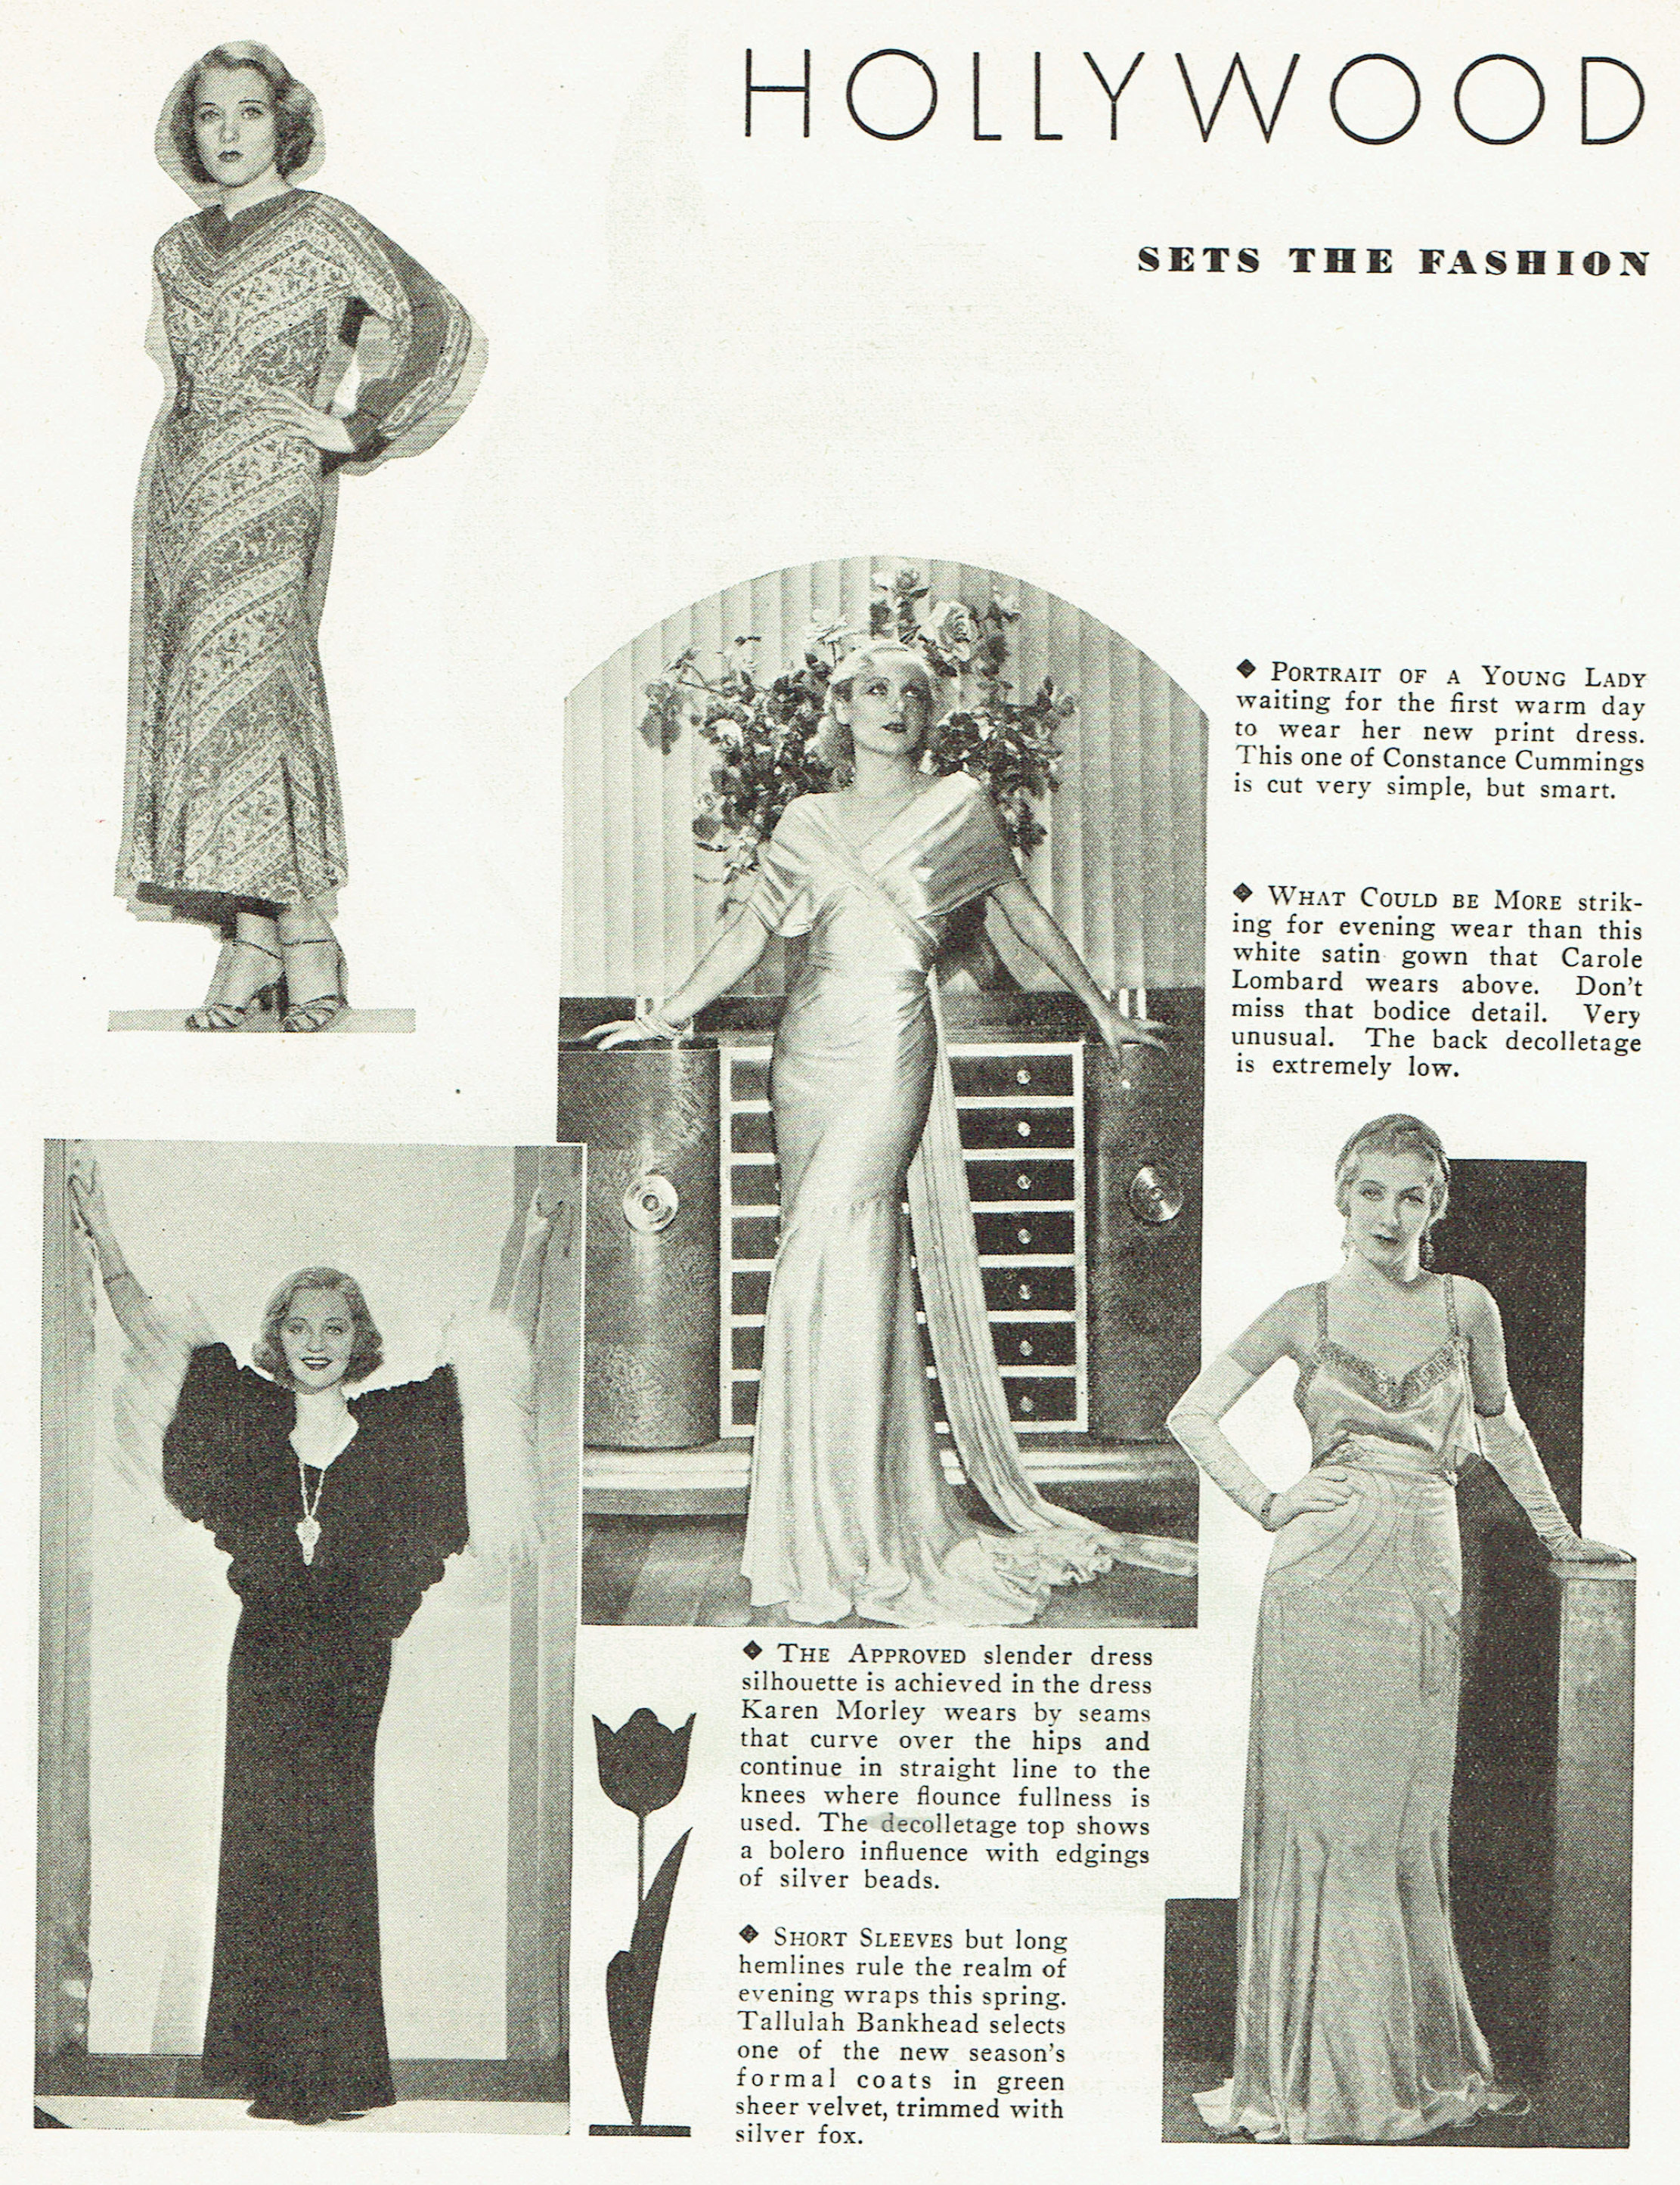 carole lombard publix theatre screen review april 1932qa